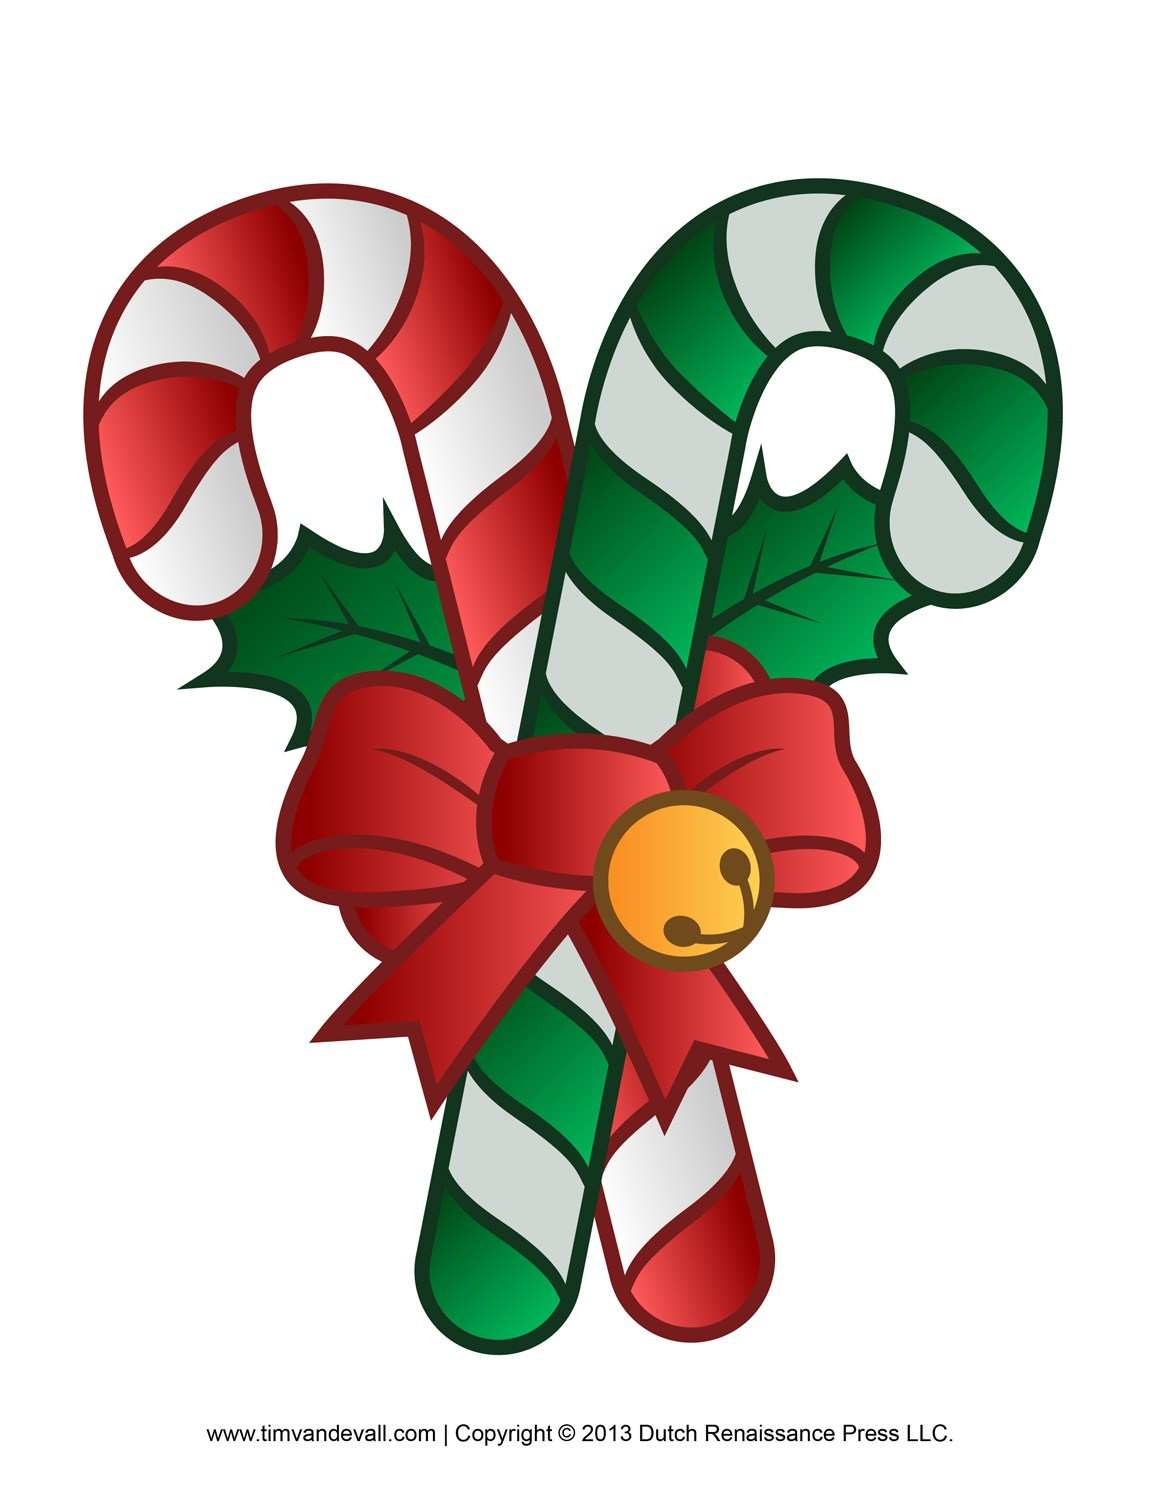 Christmas candy canes clipart 3 » Clipart Portal.